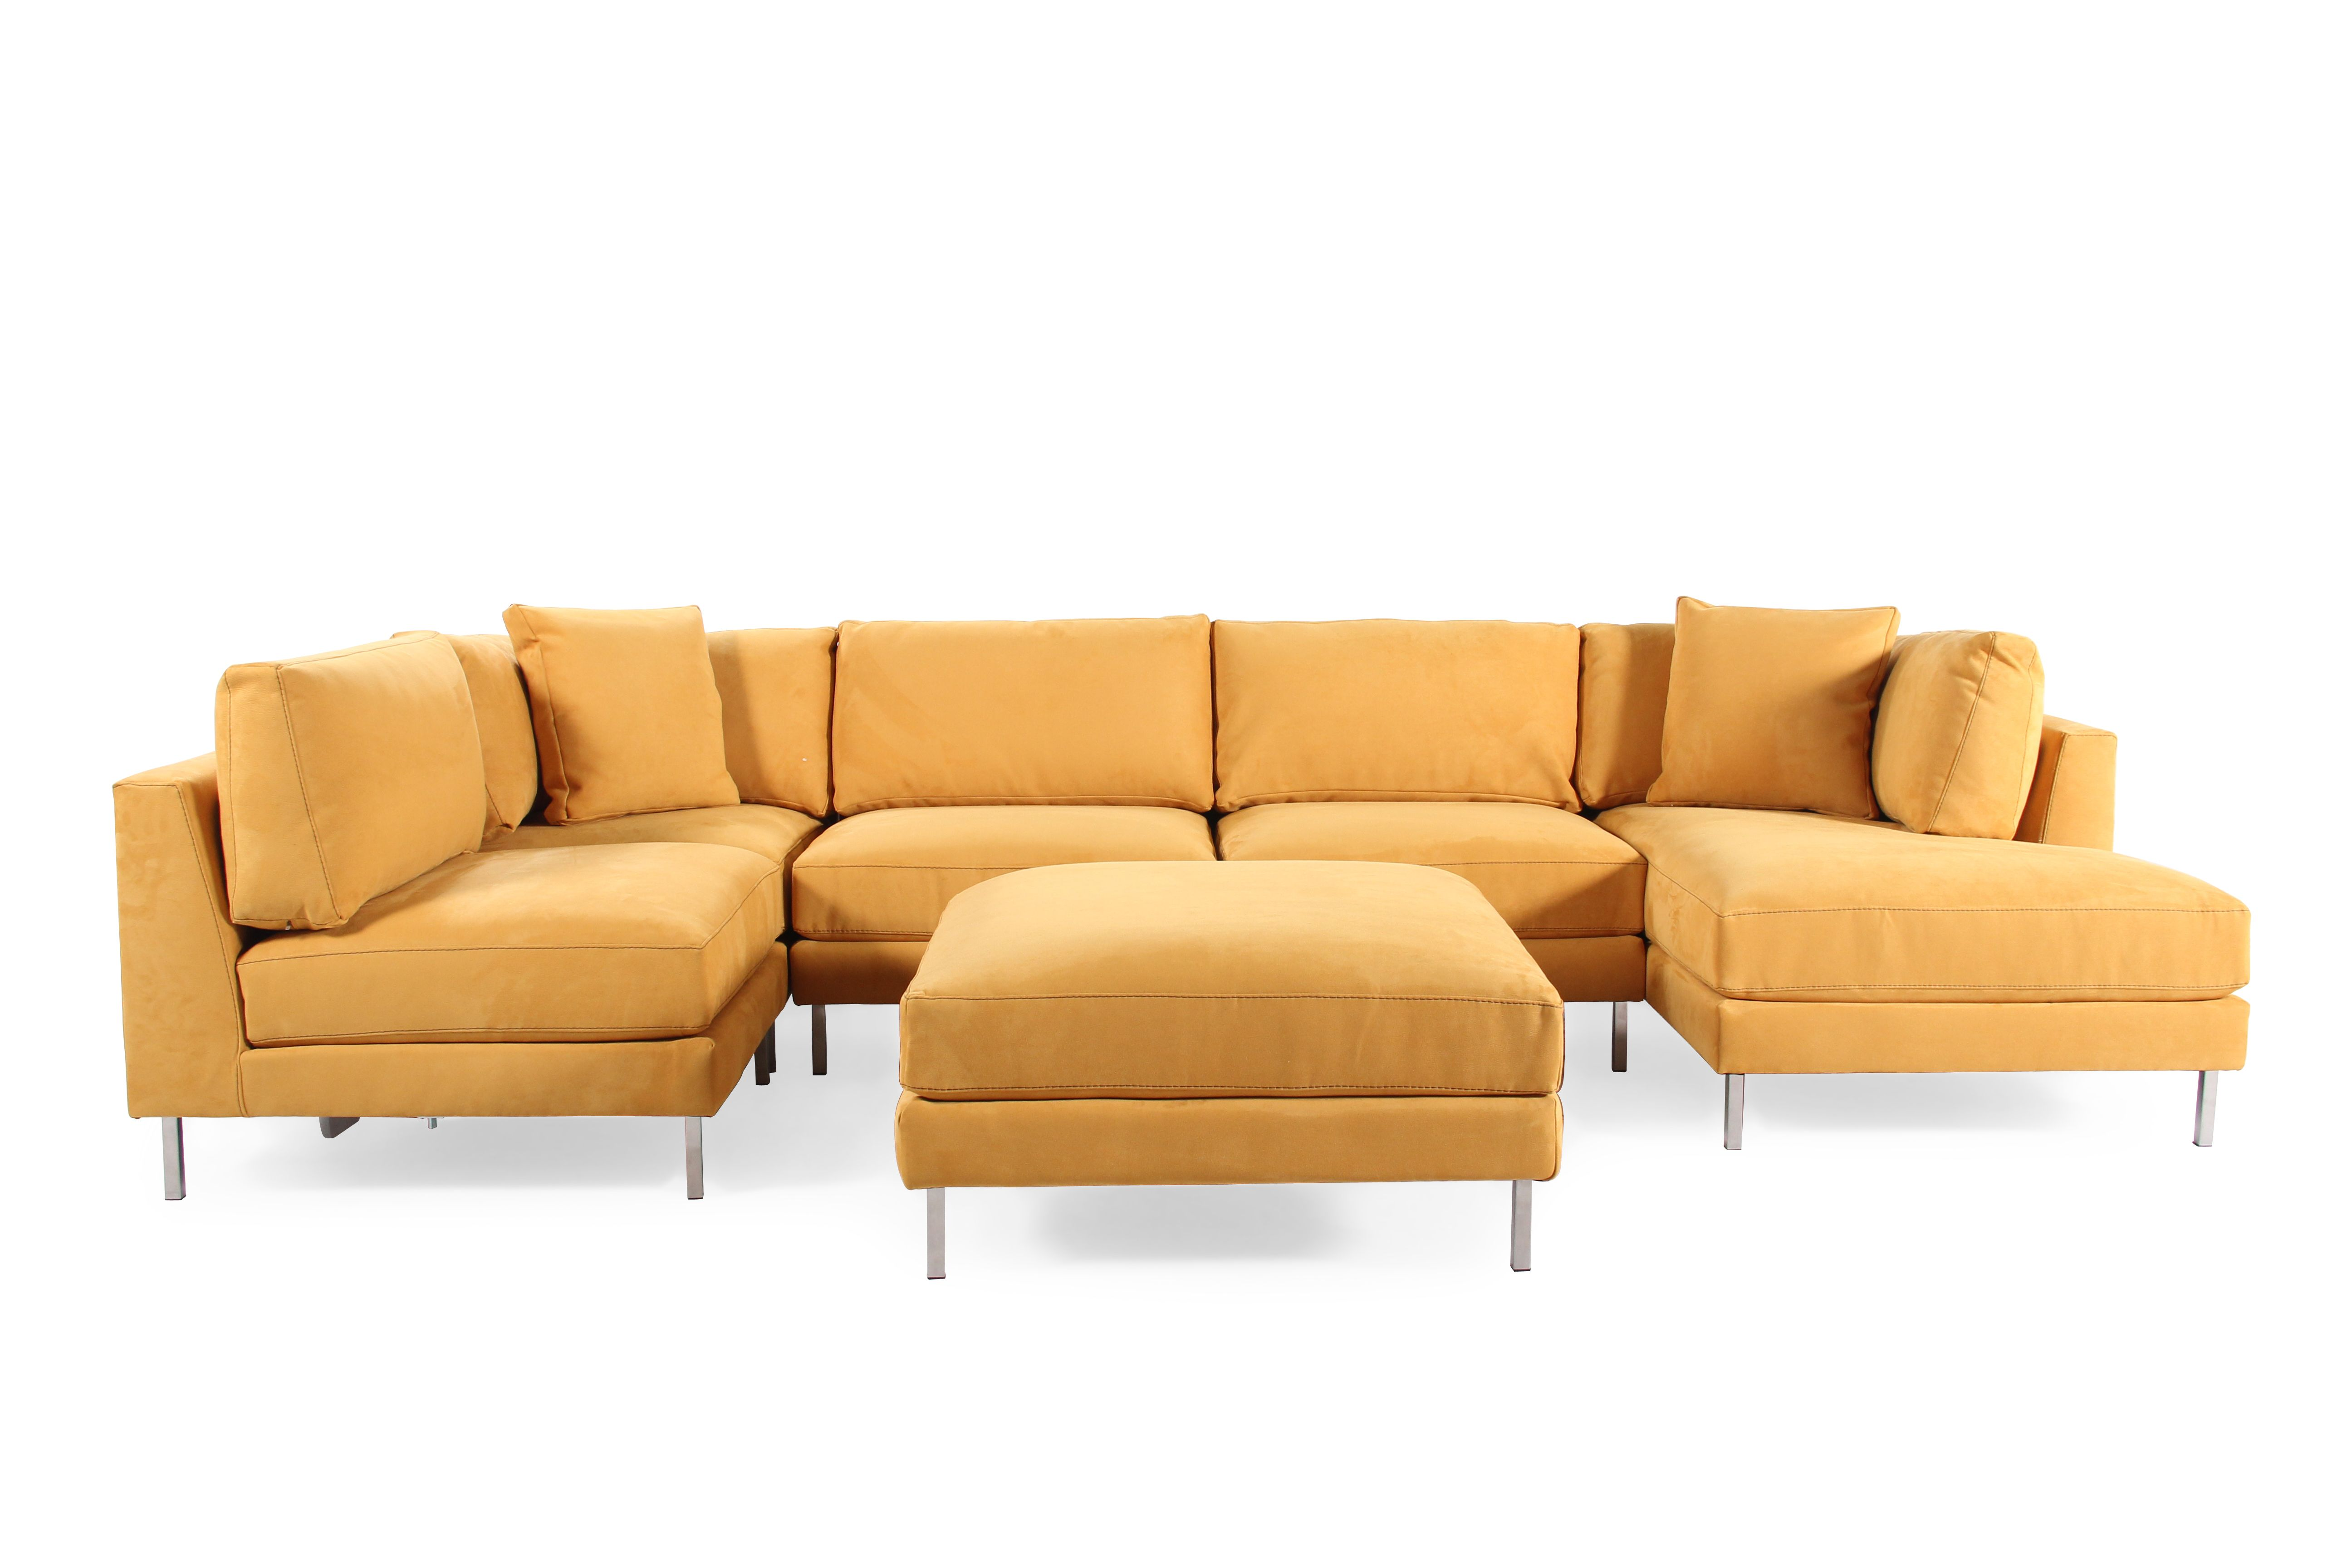 sofa room leeson st montero microfiber convert a couch sleeper bed multiple colors jonathan louis remy six piece sectional mathis brothers